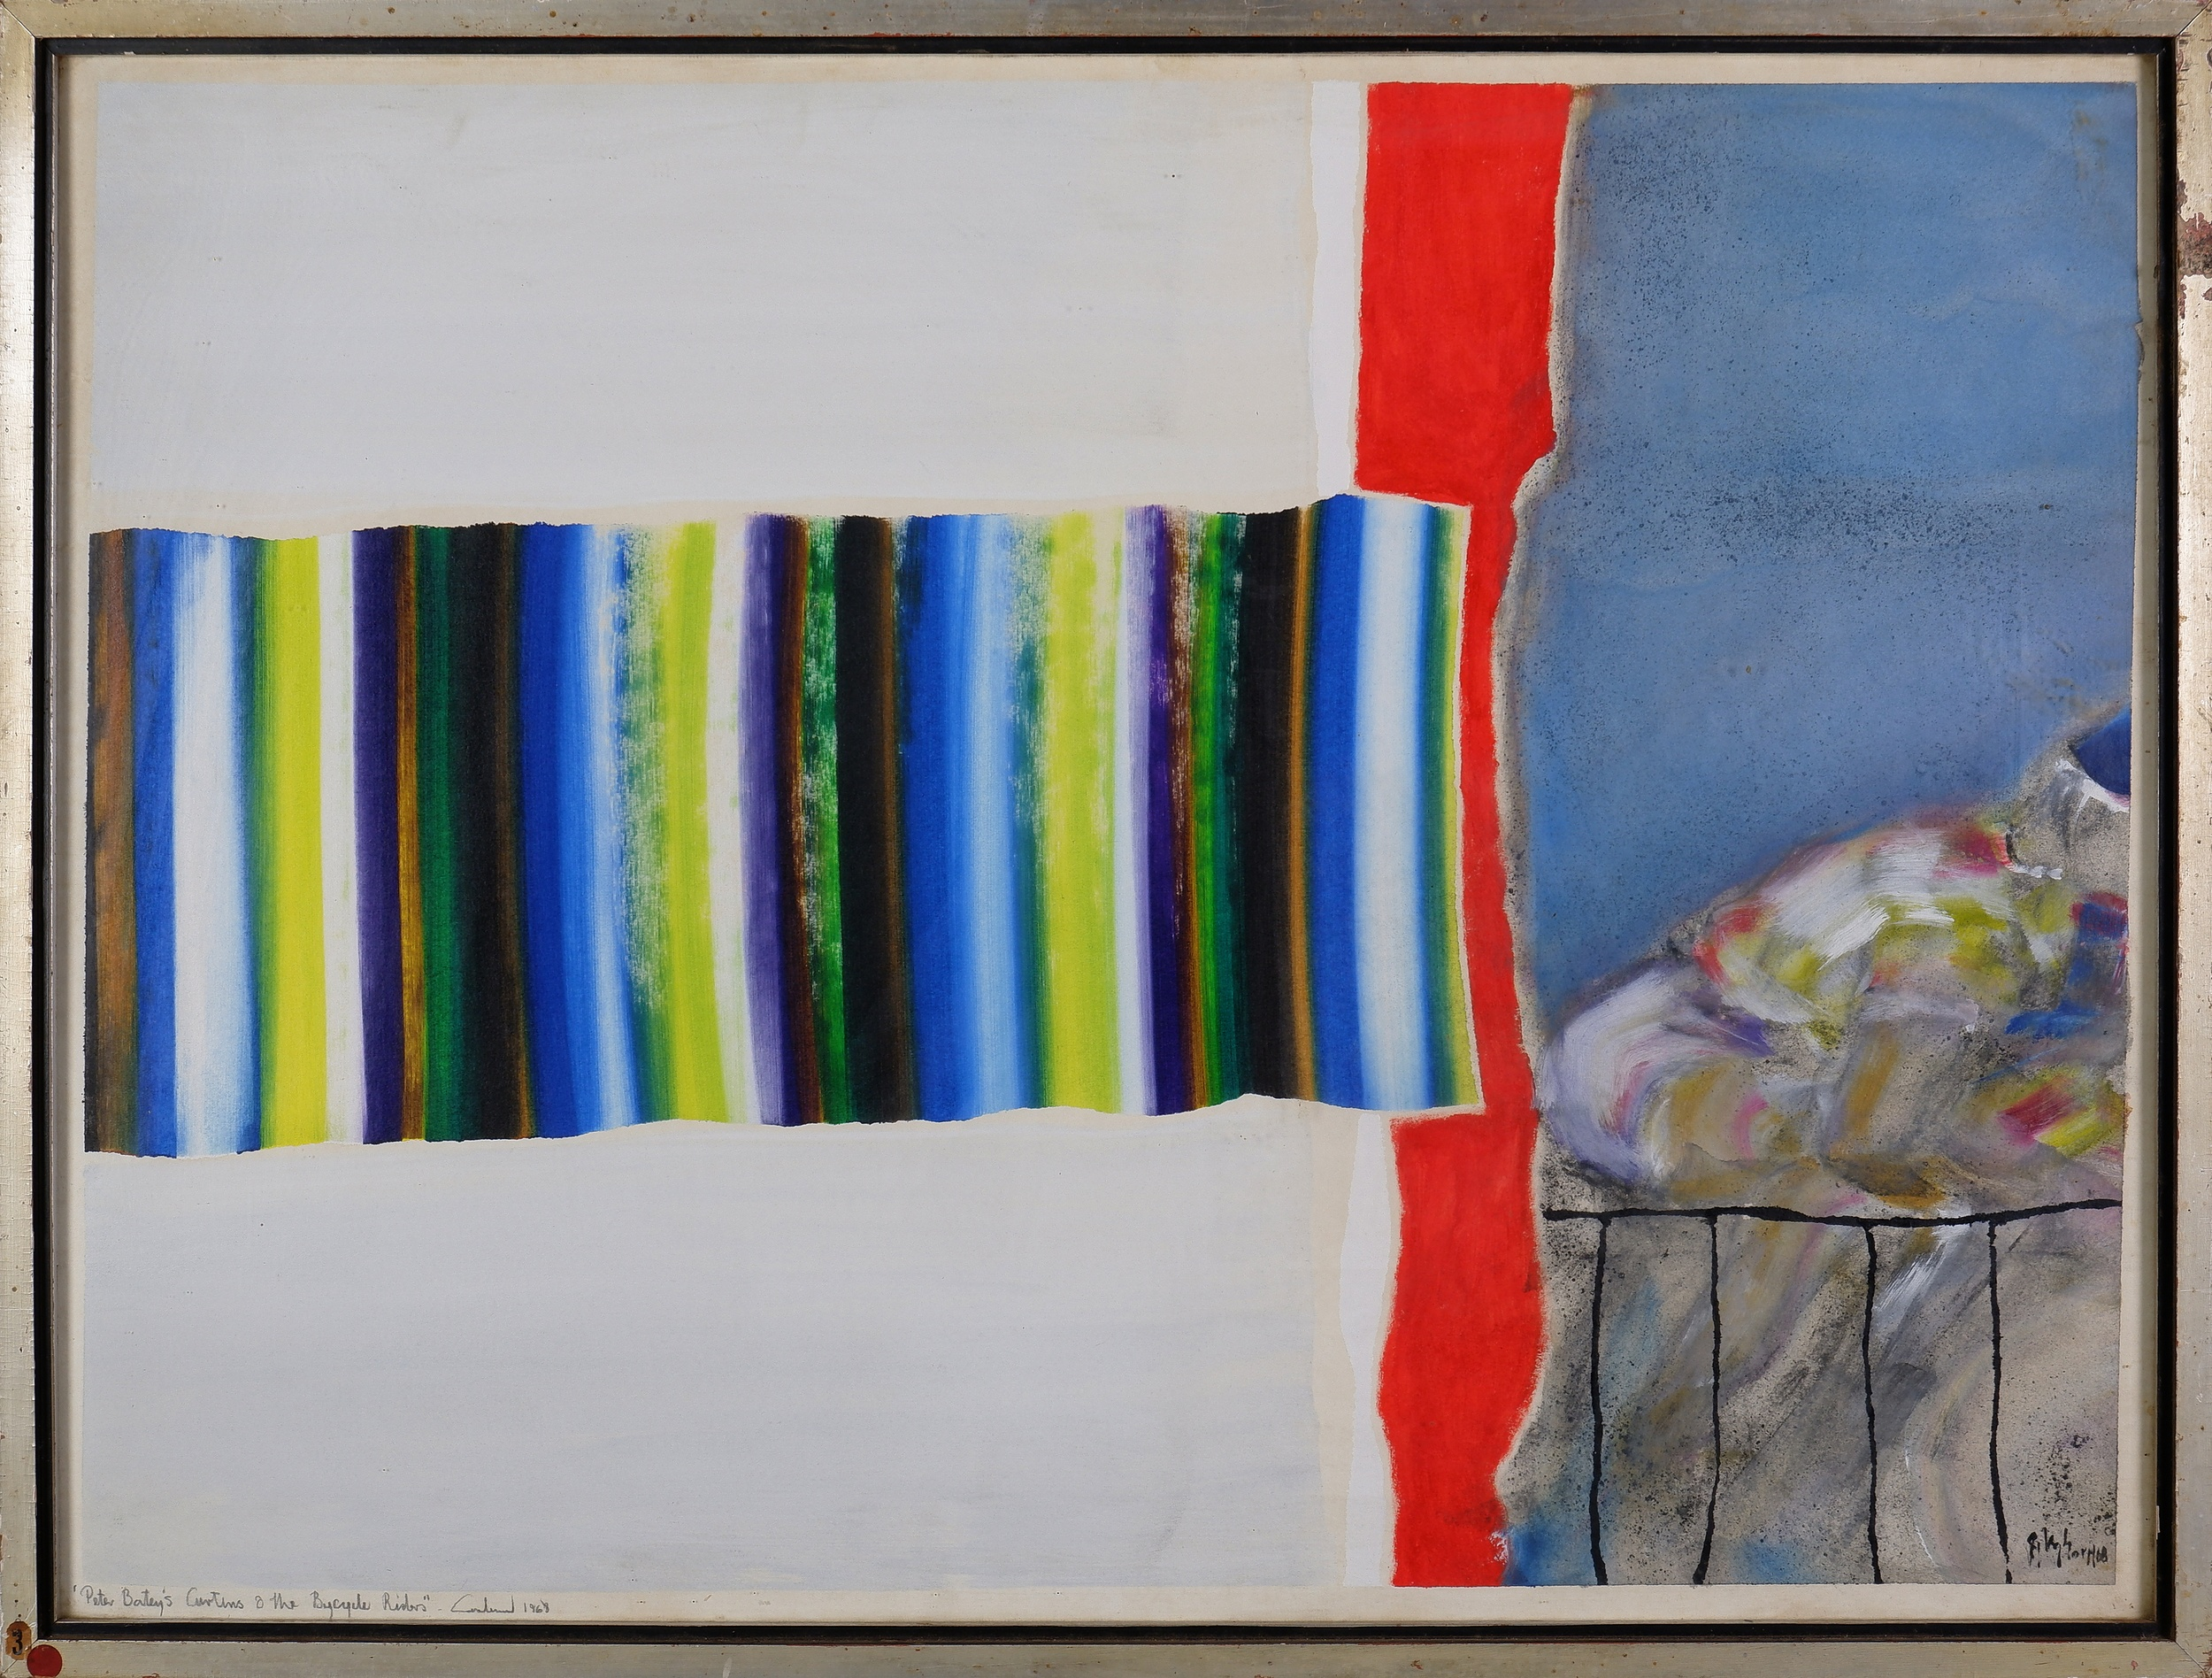 'Thomas Gleghorn (born 1925), Peter Bateys Curtains and the Bicycle Riders 1968, Mixed Media on Paper'